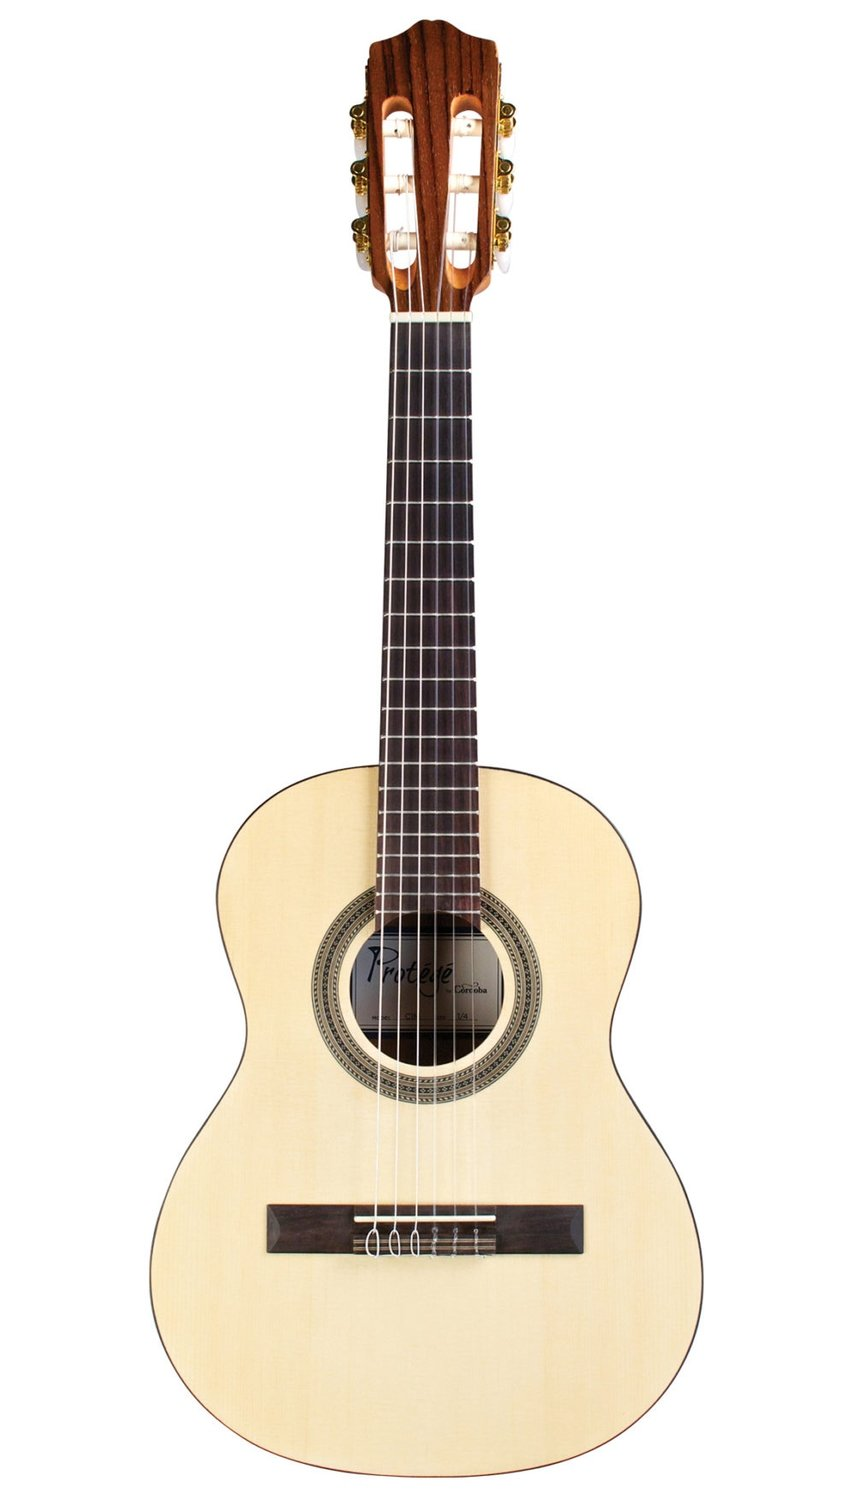 Cordoba C1M 1/4 Size - Satin finish Spruce top, Mahogany b/s - Quality beginner Classical Guitar